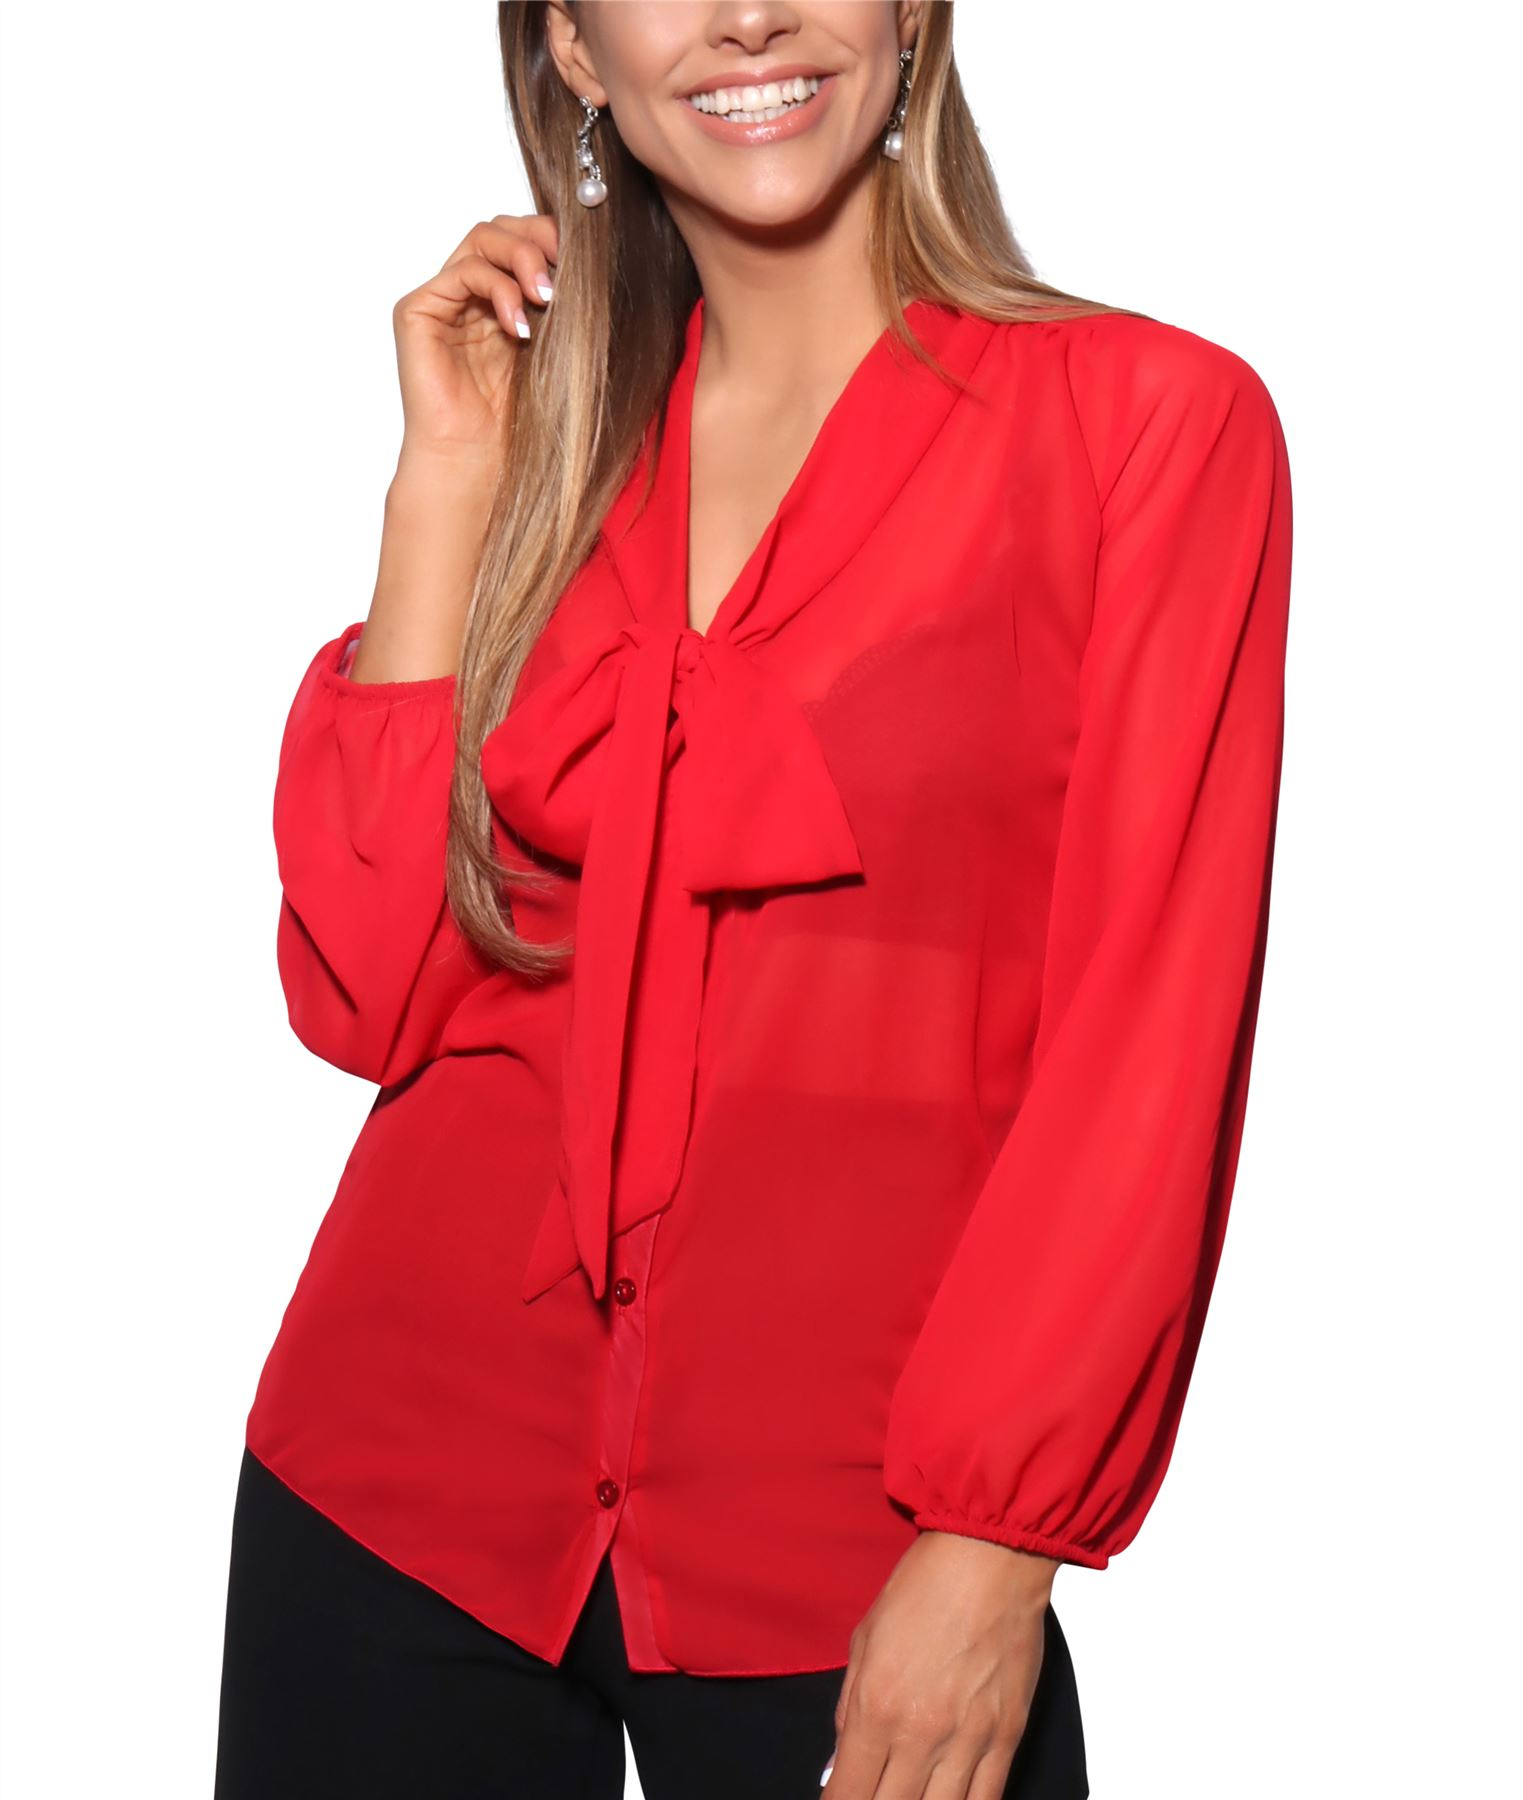 Womens-Ladies-Chiffon-Blouse-Long-Sleeve-Pussy-Bow-Top-Plain-Shirt-Office-Party thumbnail 13